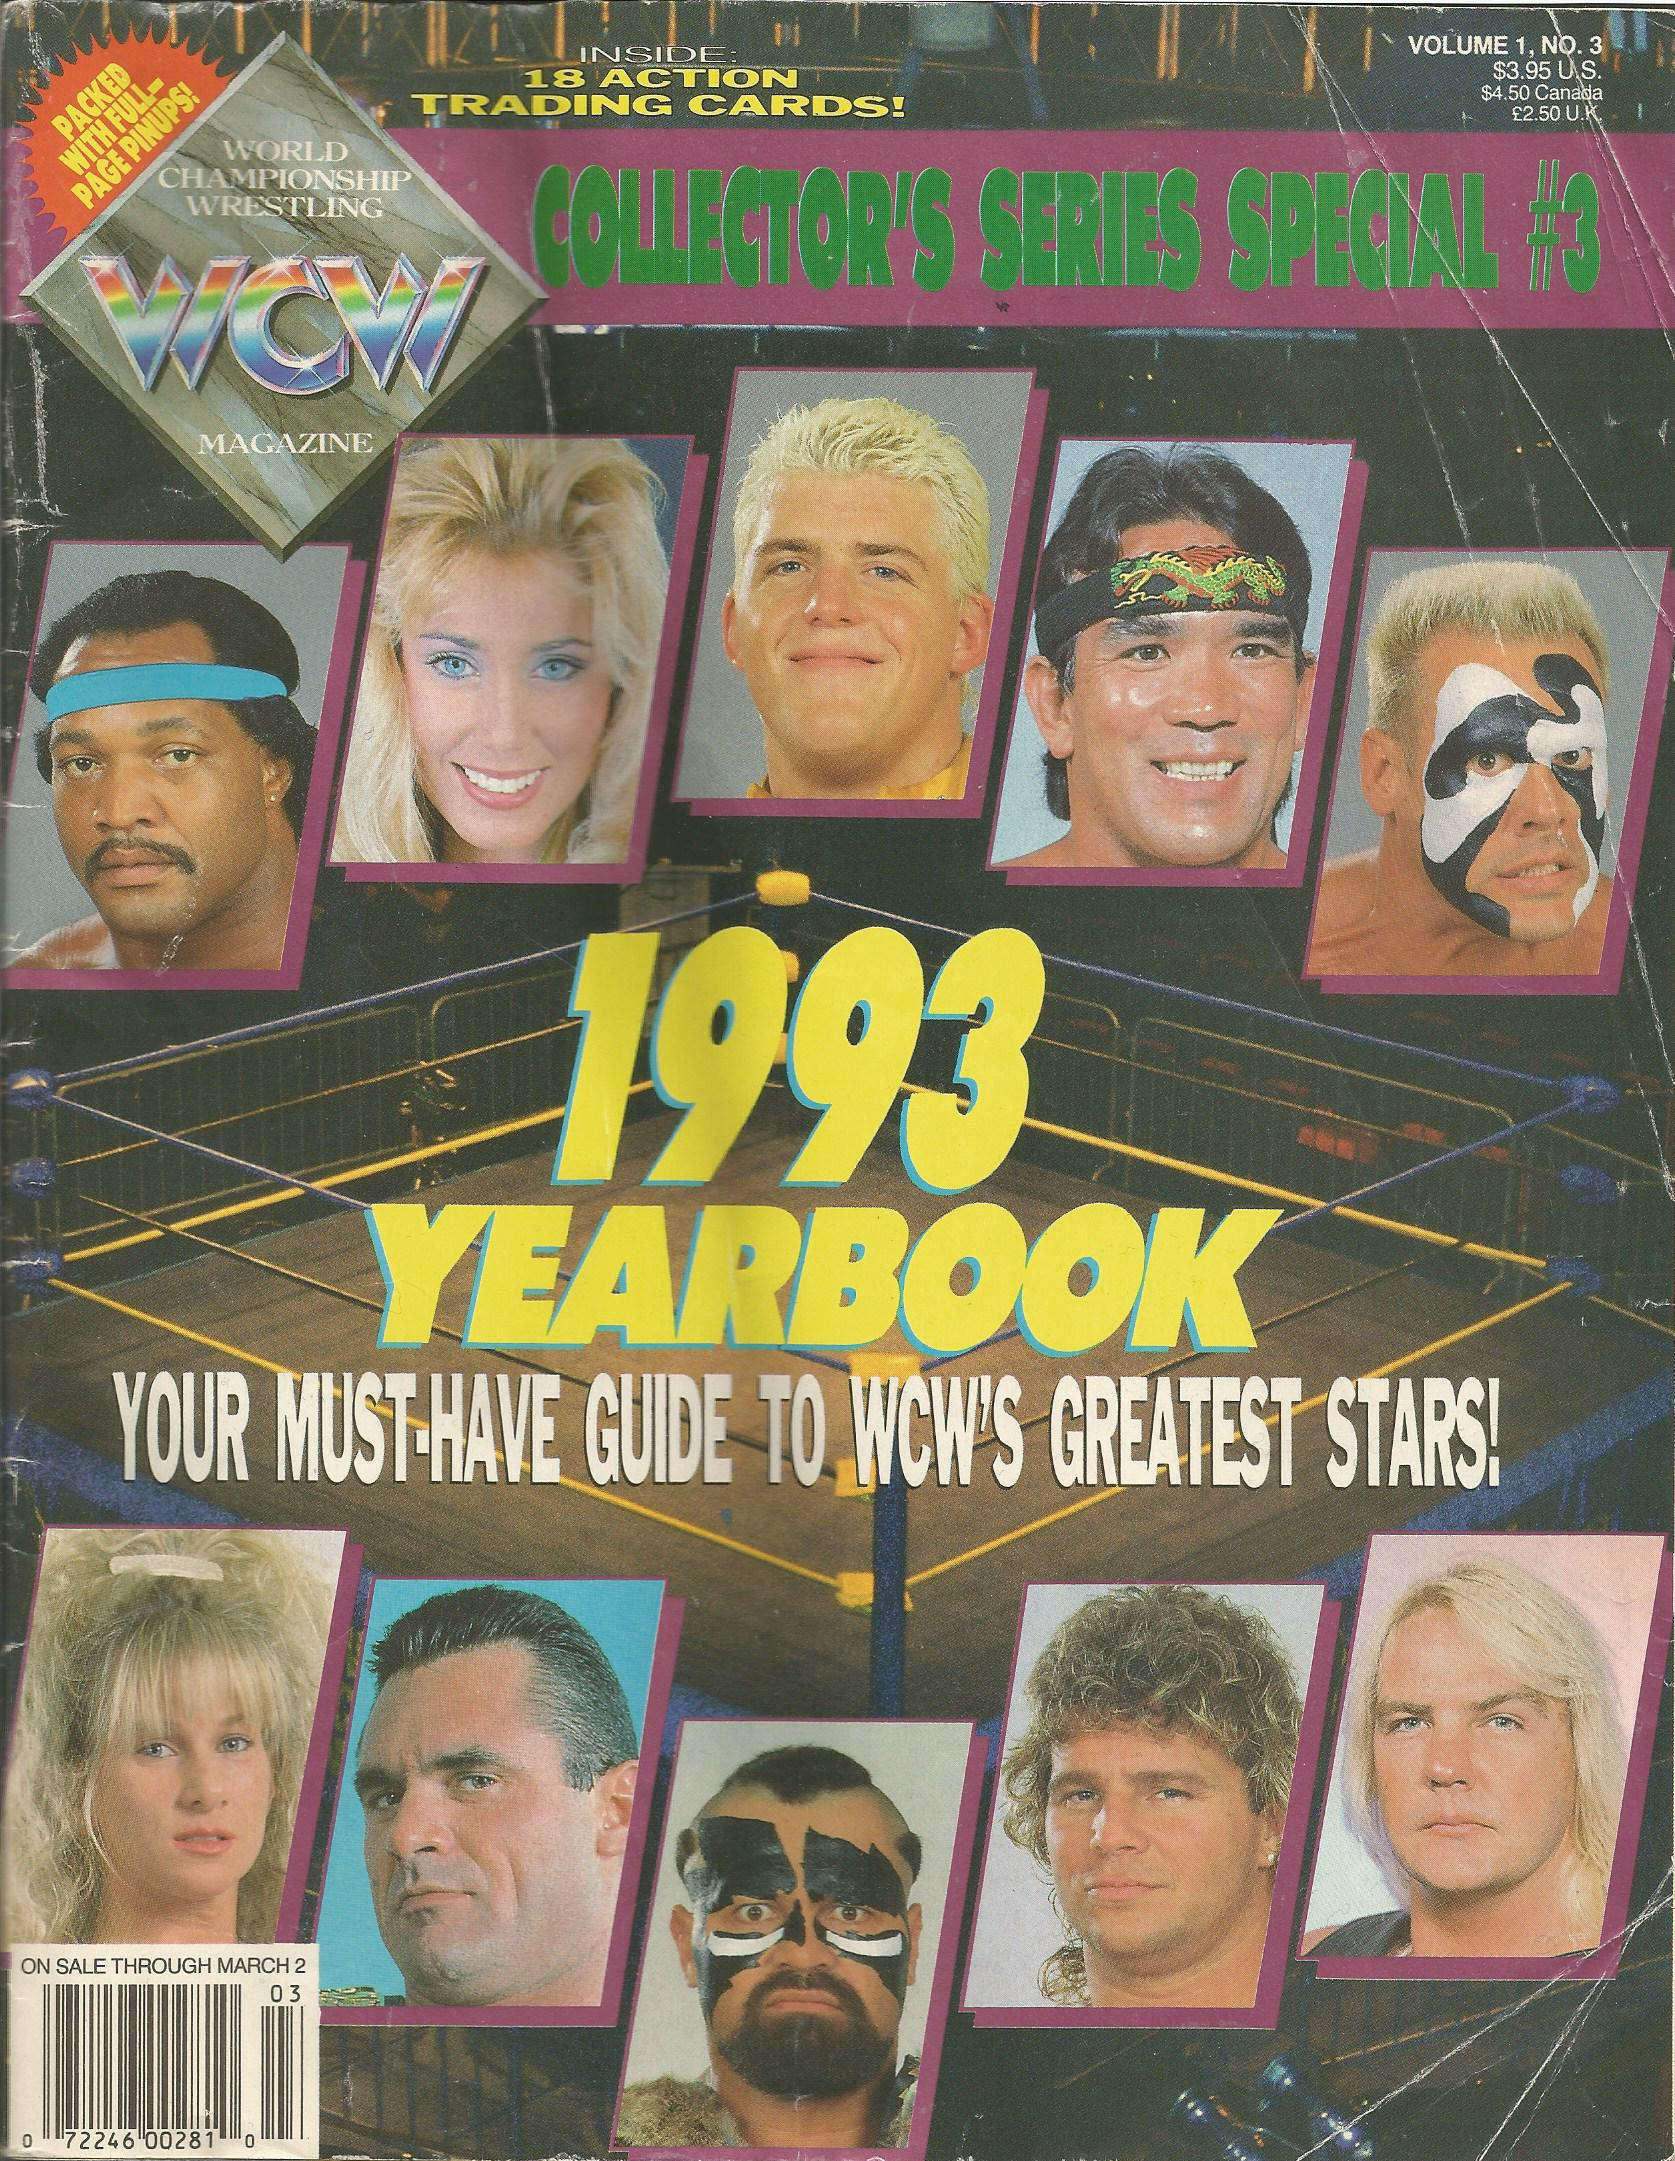 WCW 1993 Yearbook